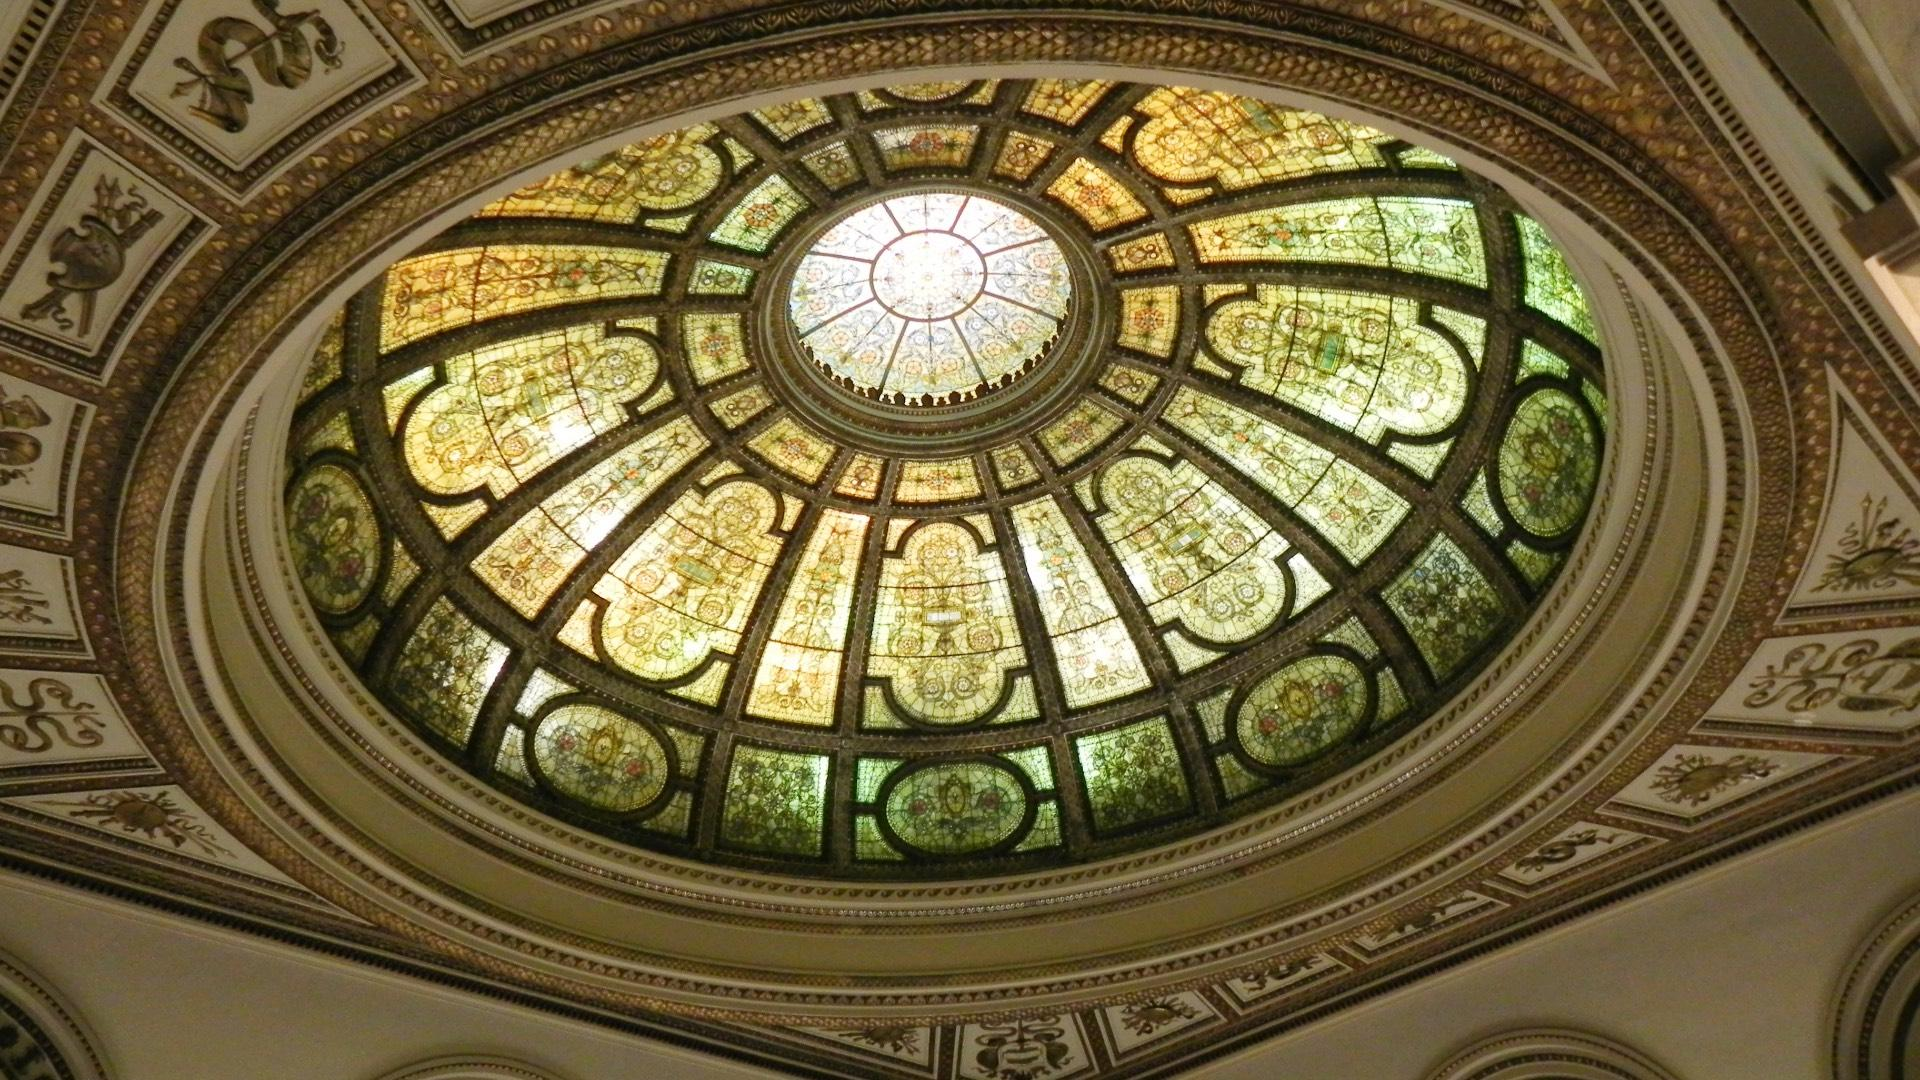 The G.A.R. dome is one of two designed by Louis Comfort Tiffany for the Cultural Center. (Courtesy Department of Cultural Affairs and Special Events)